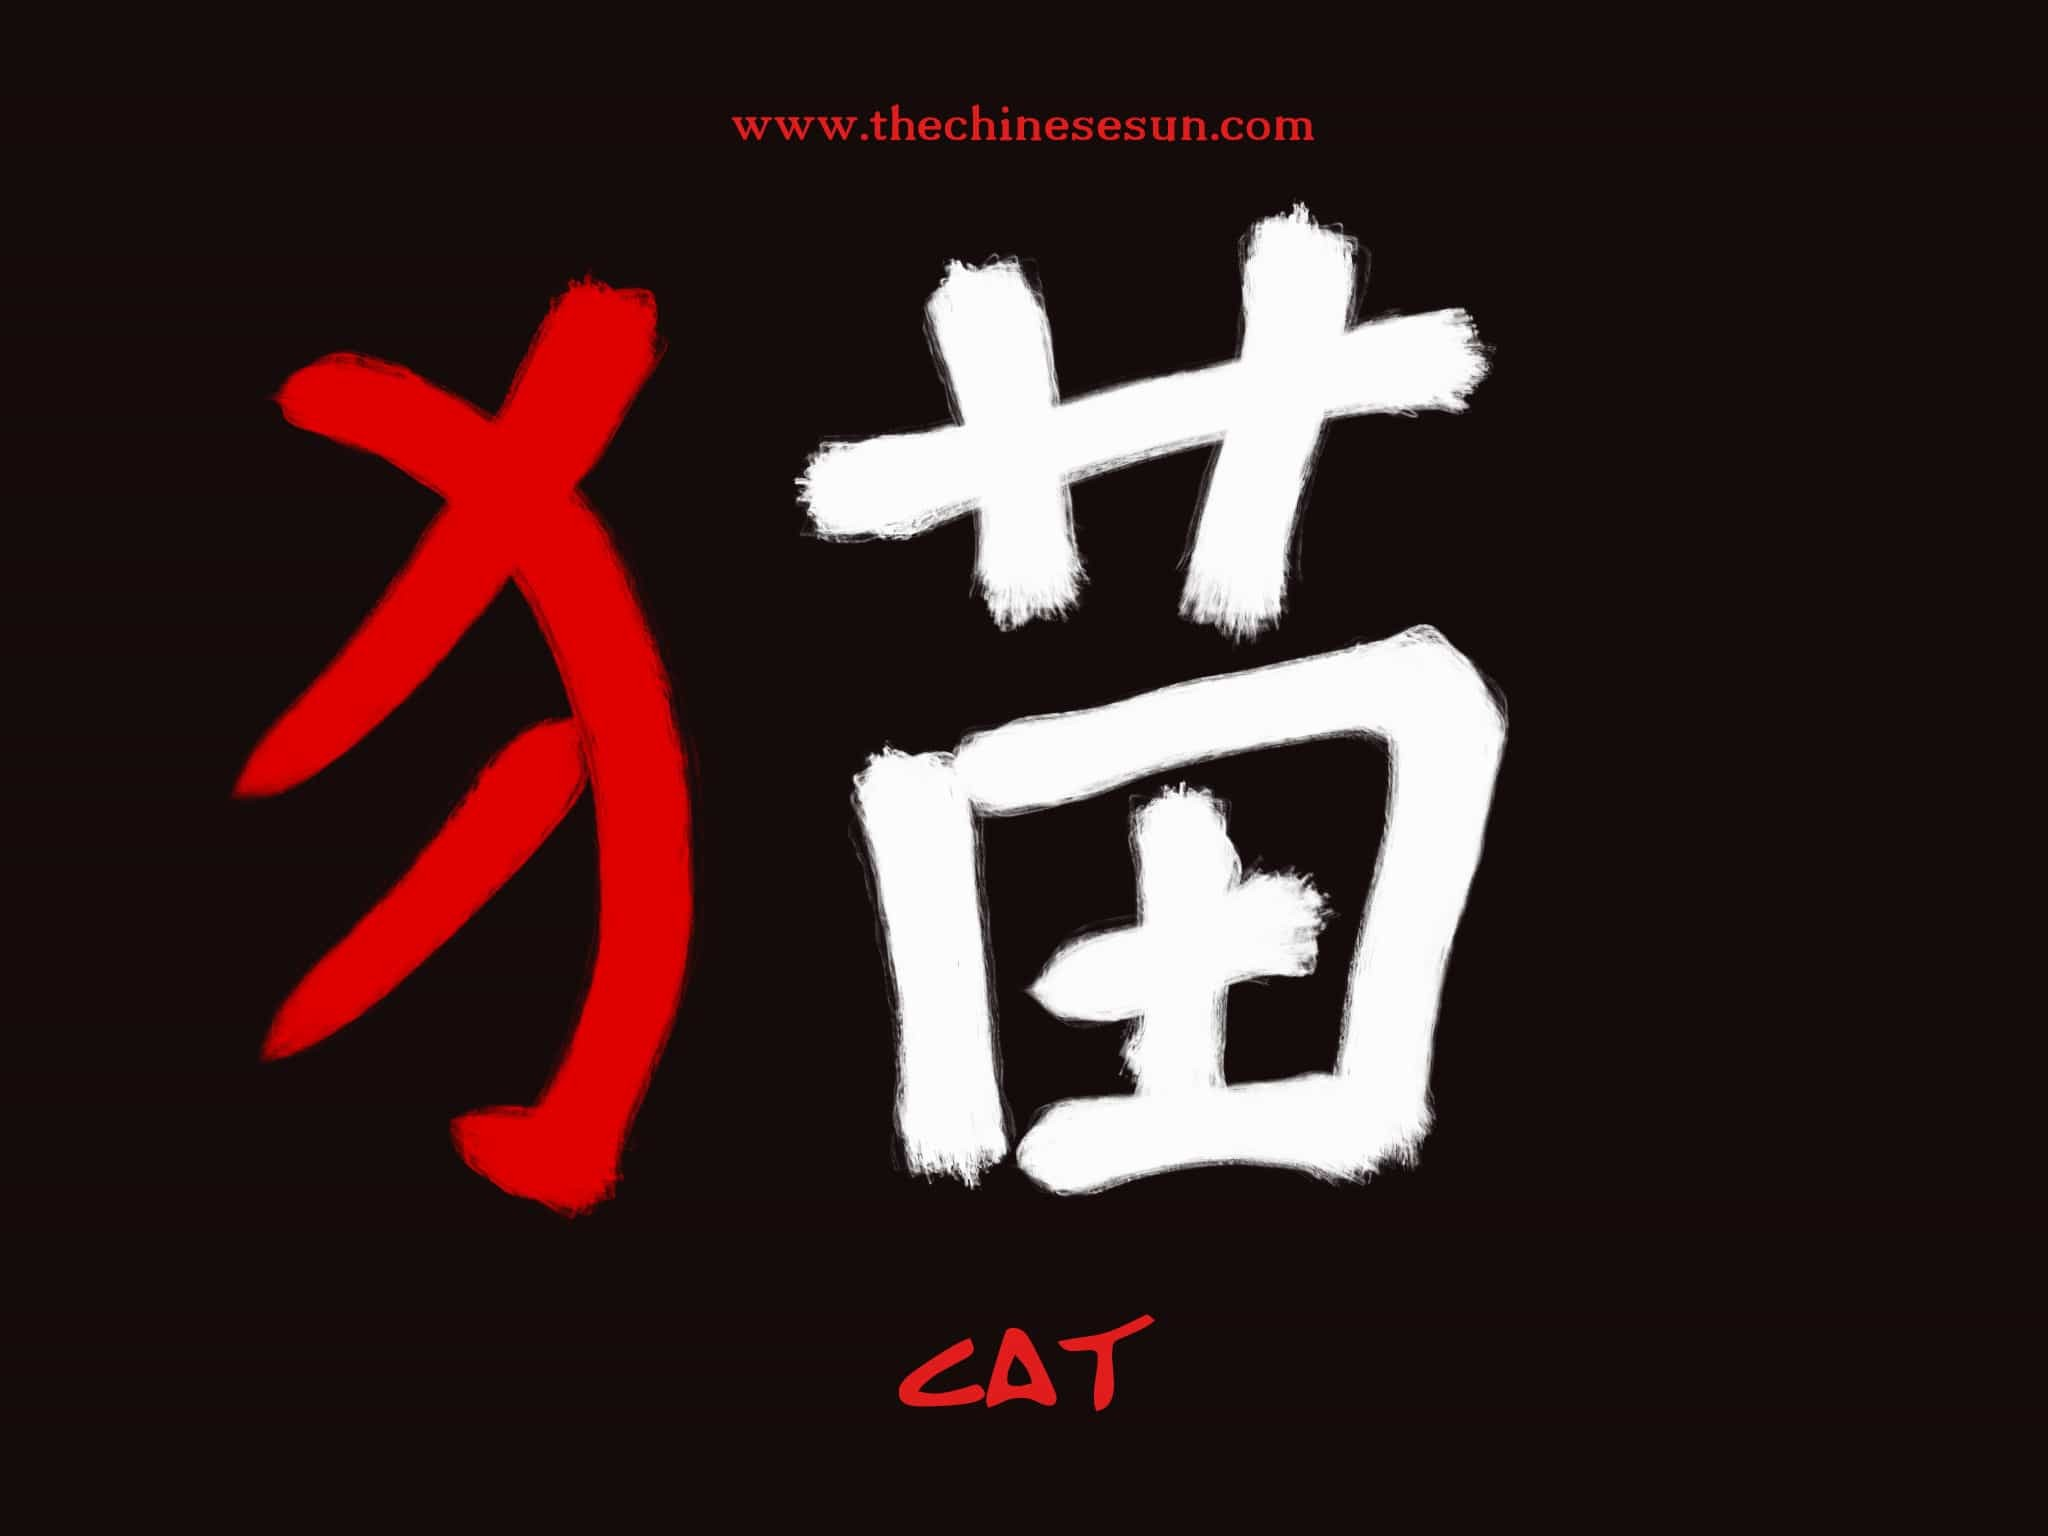 2048x1536 basic-chinese-radicals-cat-in-chinese-characters-chinese-